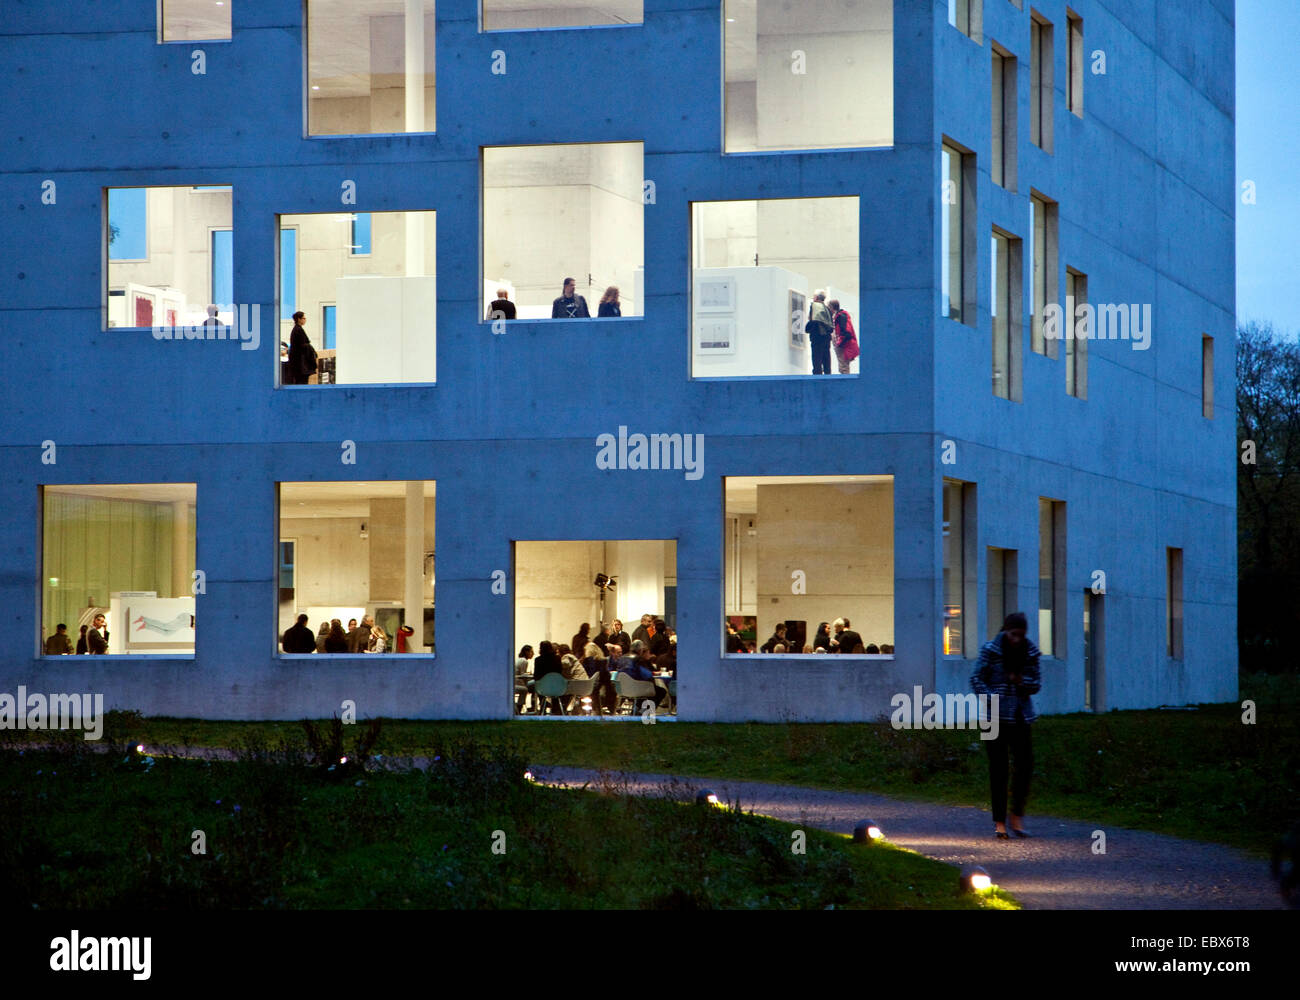 people in Zollverein School of Management and Design in twilight, Germany, North Rhine-Westphalia, Ruhr Area, Essen - Stock Image